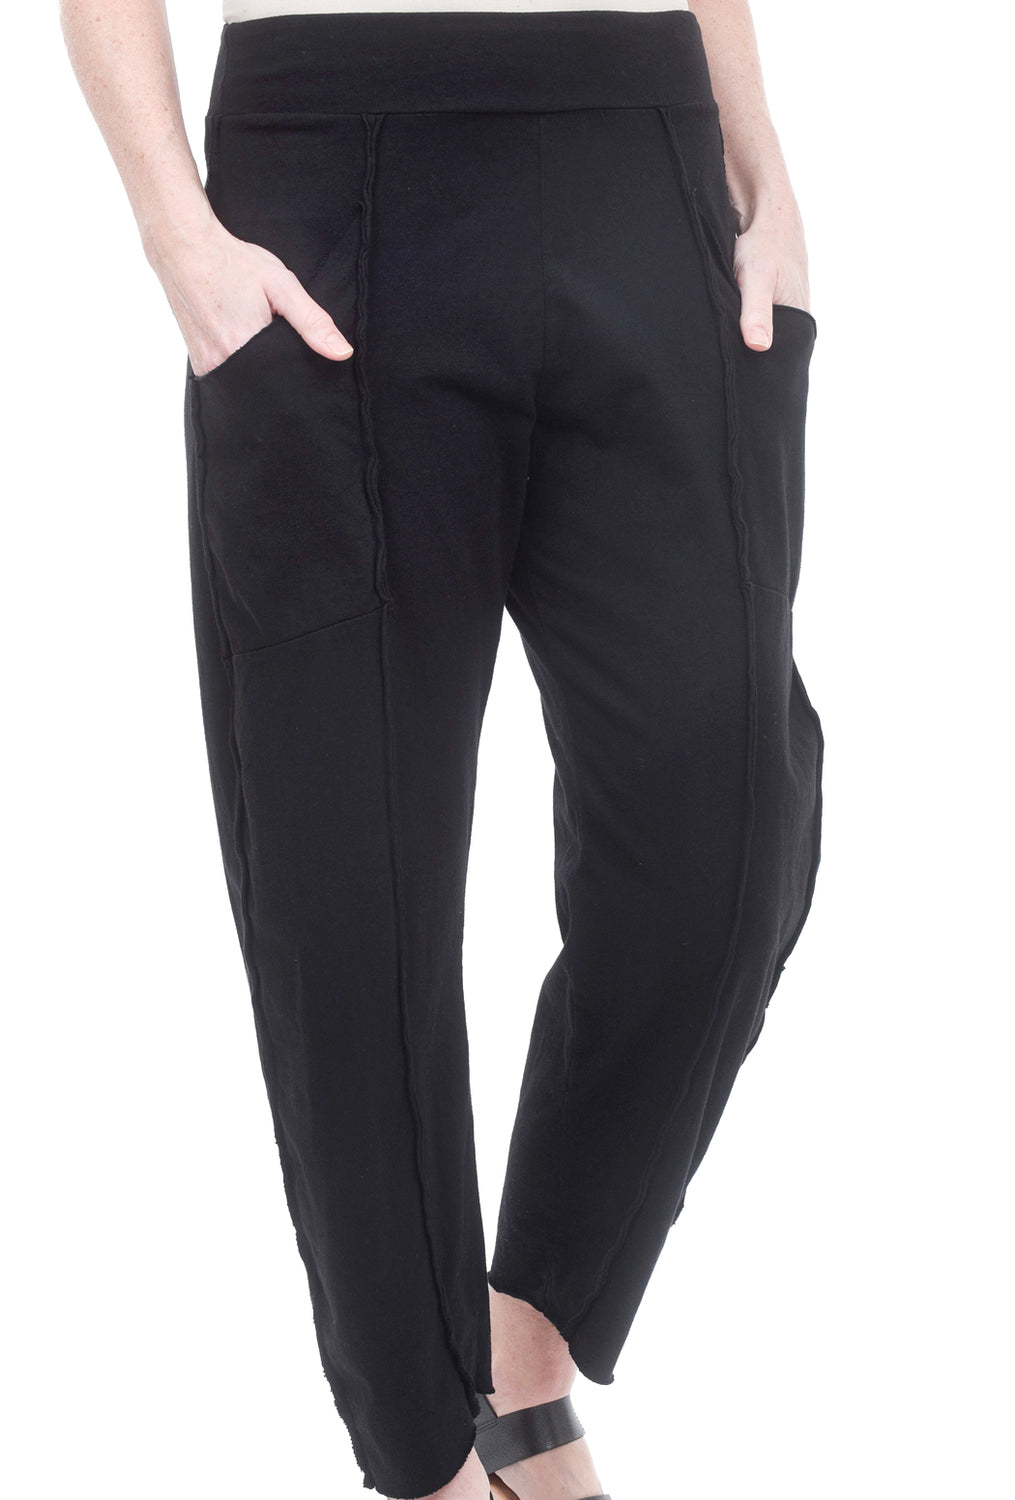 Cynthia Ashby Lily Pants, Black